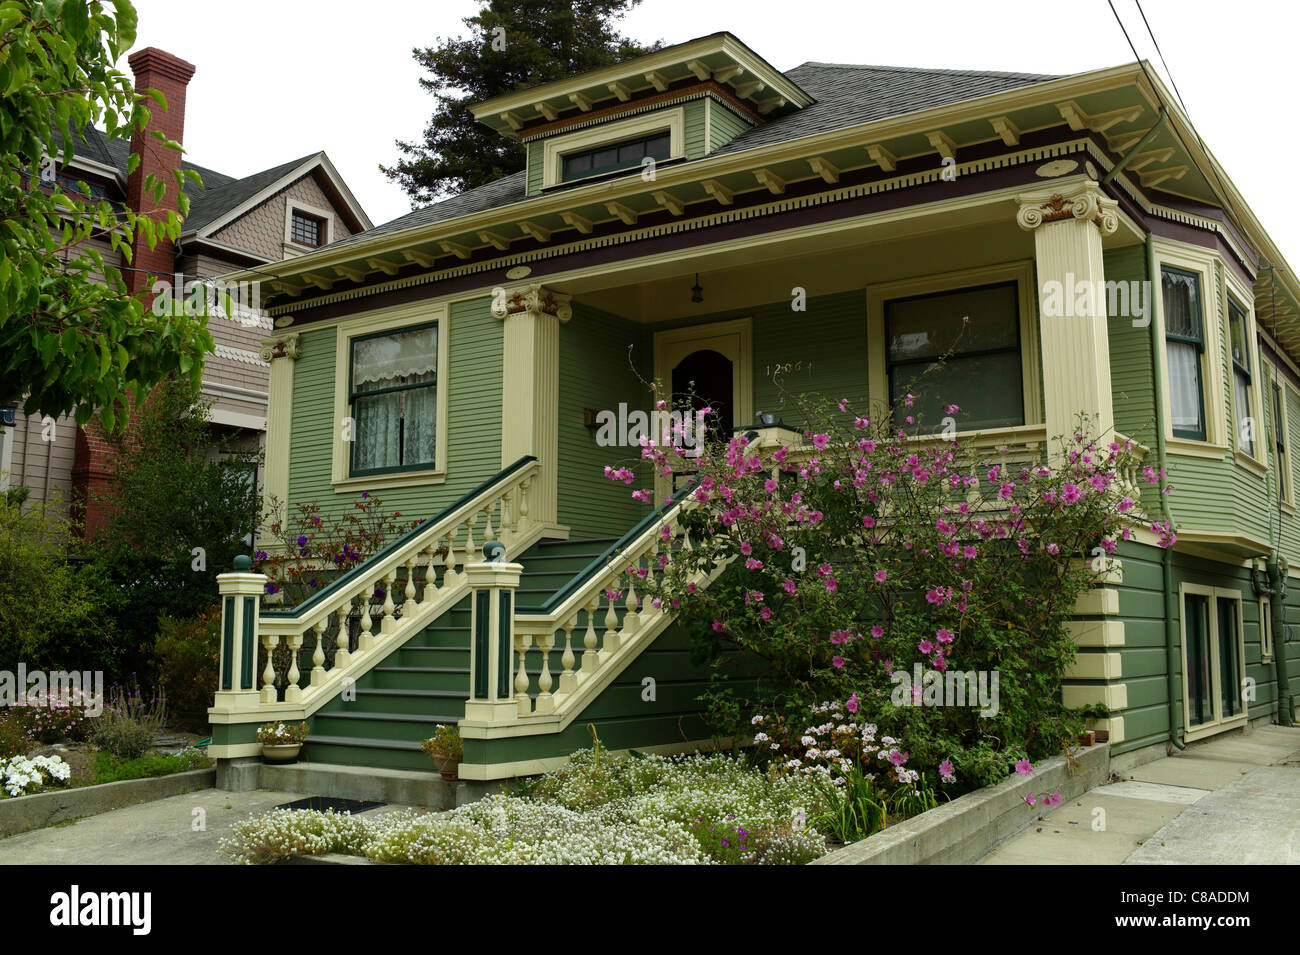 Victorian home architecture 19th century Alameda gables style 19th century Queen Victoria Anne Georgian Regency - Stock Image